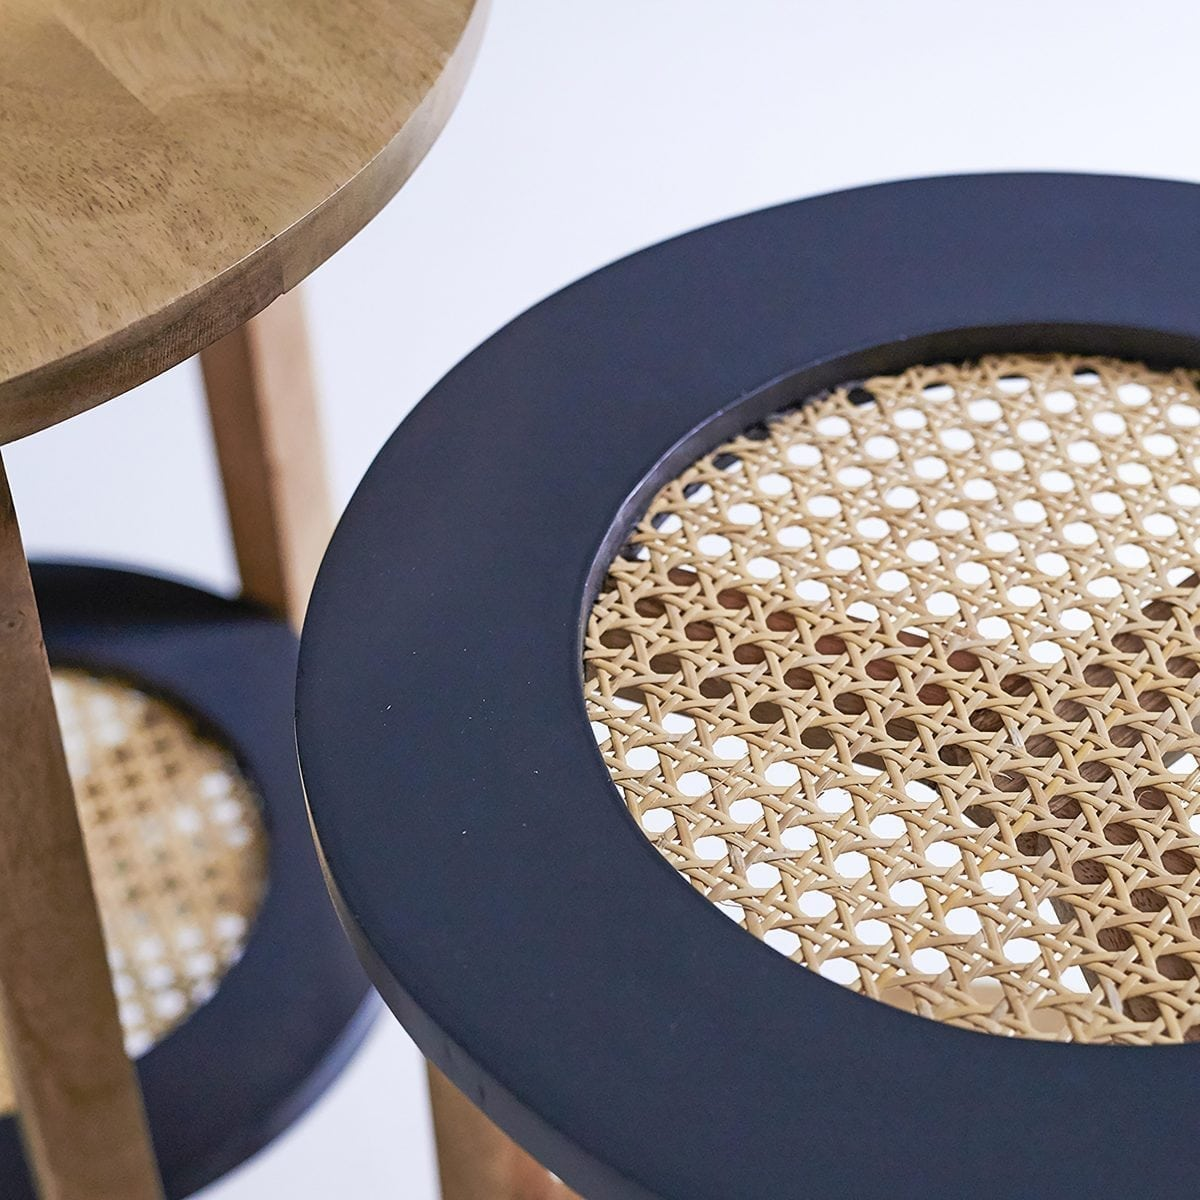 Trends Mag #14 – Cane furniture is making an extraordinary comeback